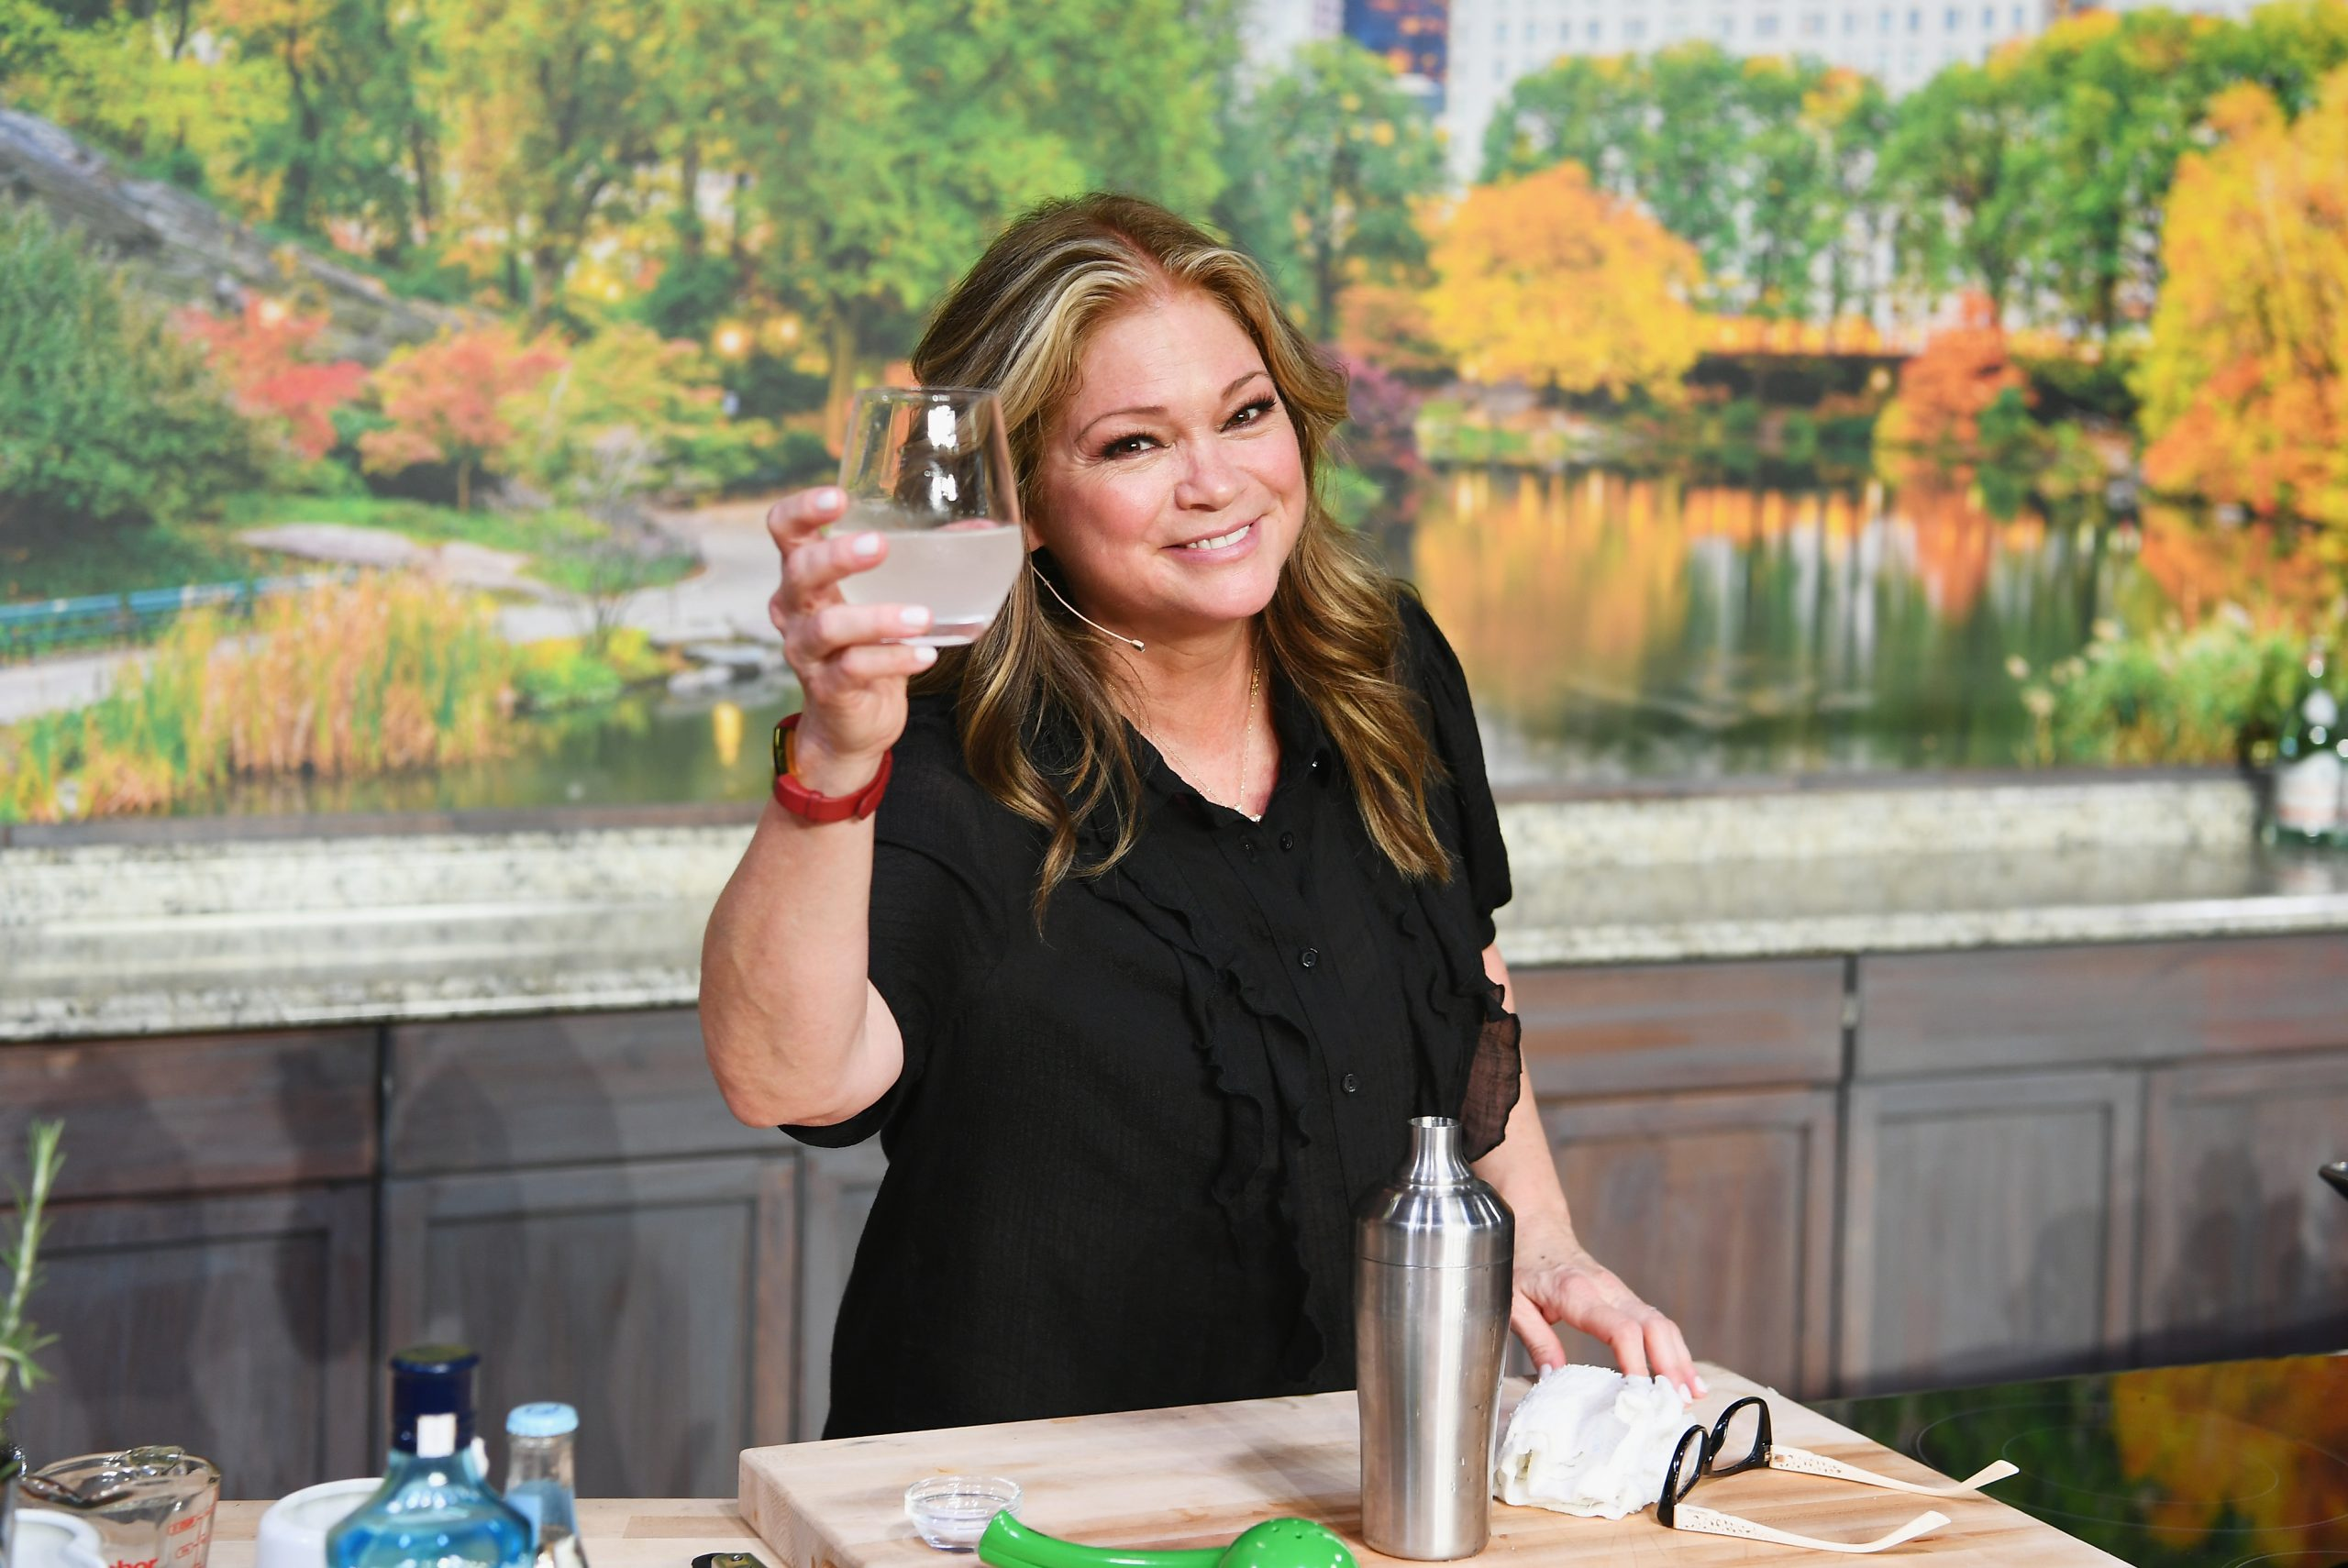 Food Network television personality Valerie Bertinelli